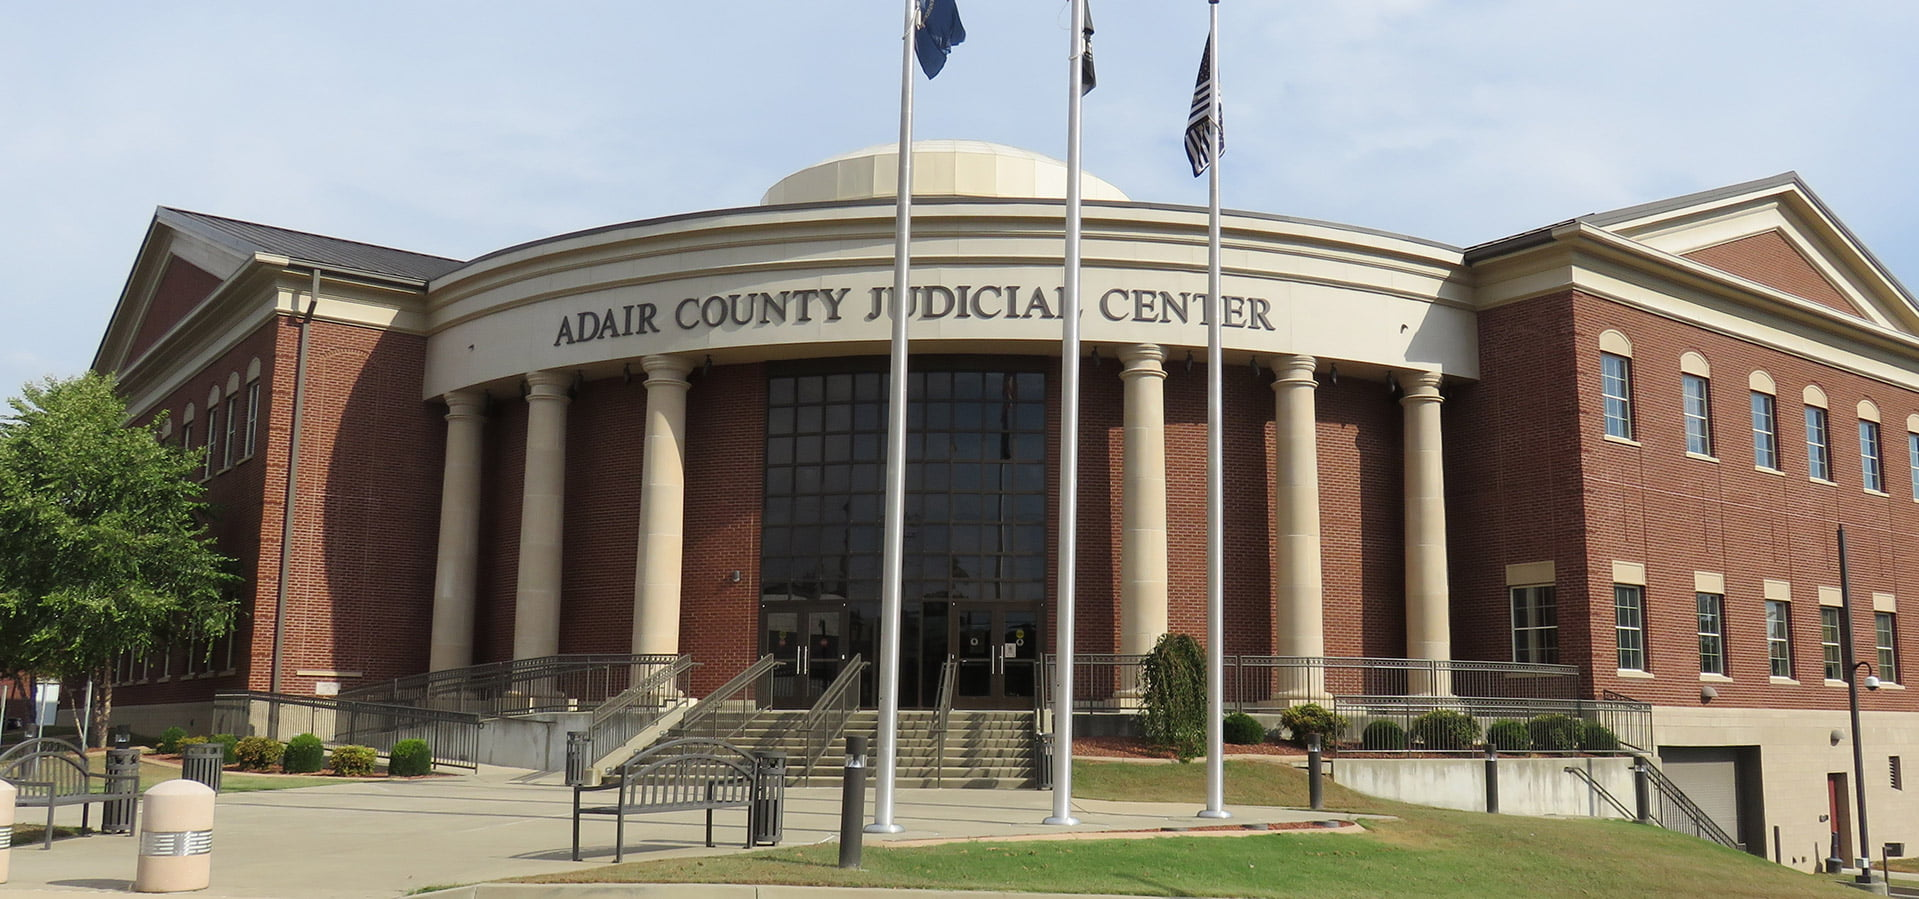 Adair County Justice Center Image